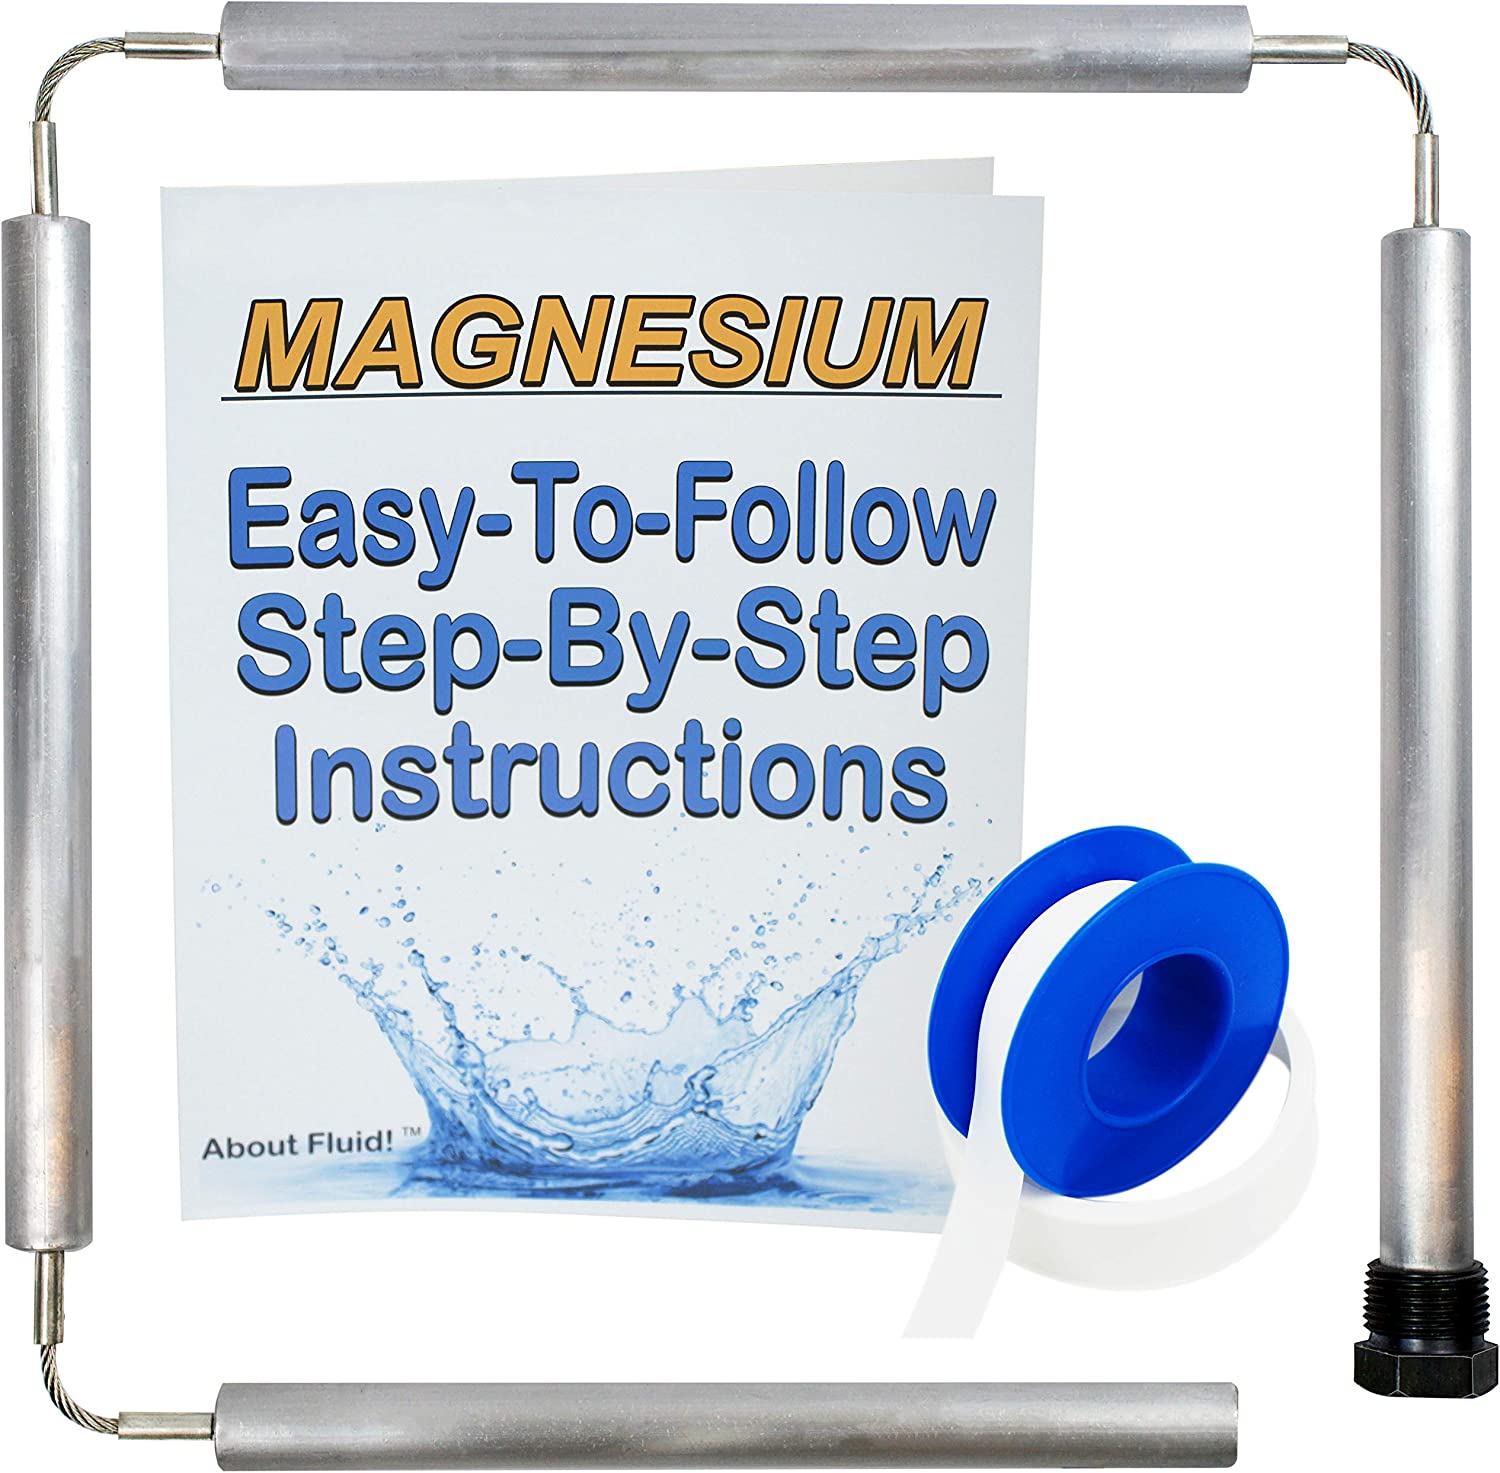 About Fluid | Magnesium Flexible Anode Rod Kit for Water Heaters | Teflon Tape | Easy-to-Follow, Step-by-Step Instructions | 44 Inches Long. (Without Socket and Cap)